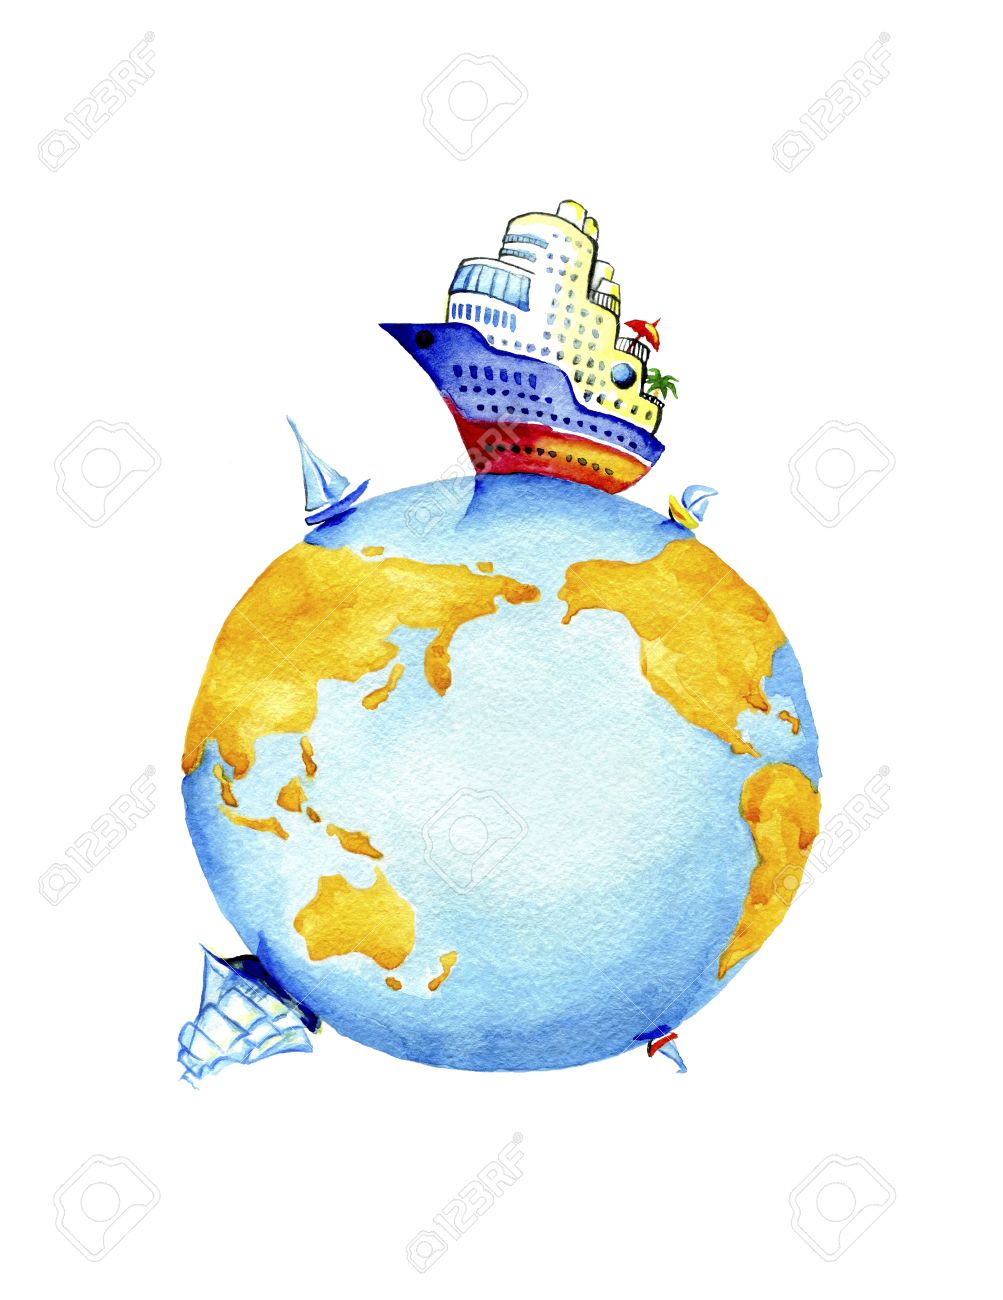 Planet Earth and world waterways transport.Watercolor painting on white background - 68799445